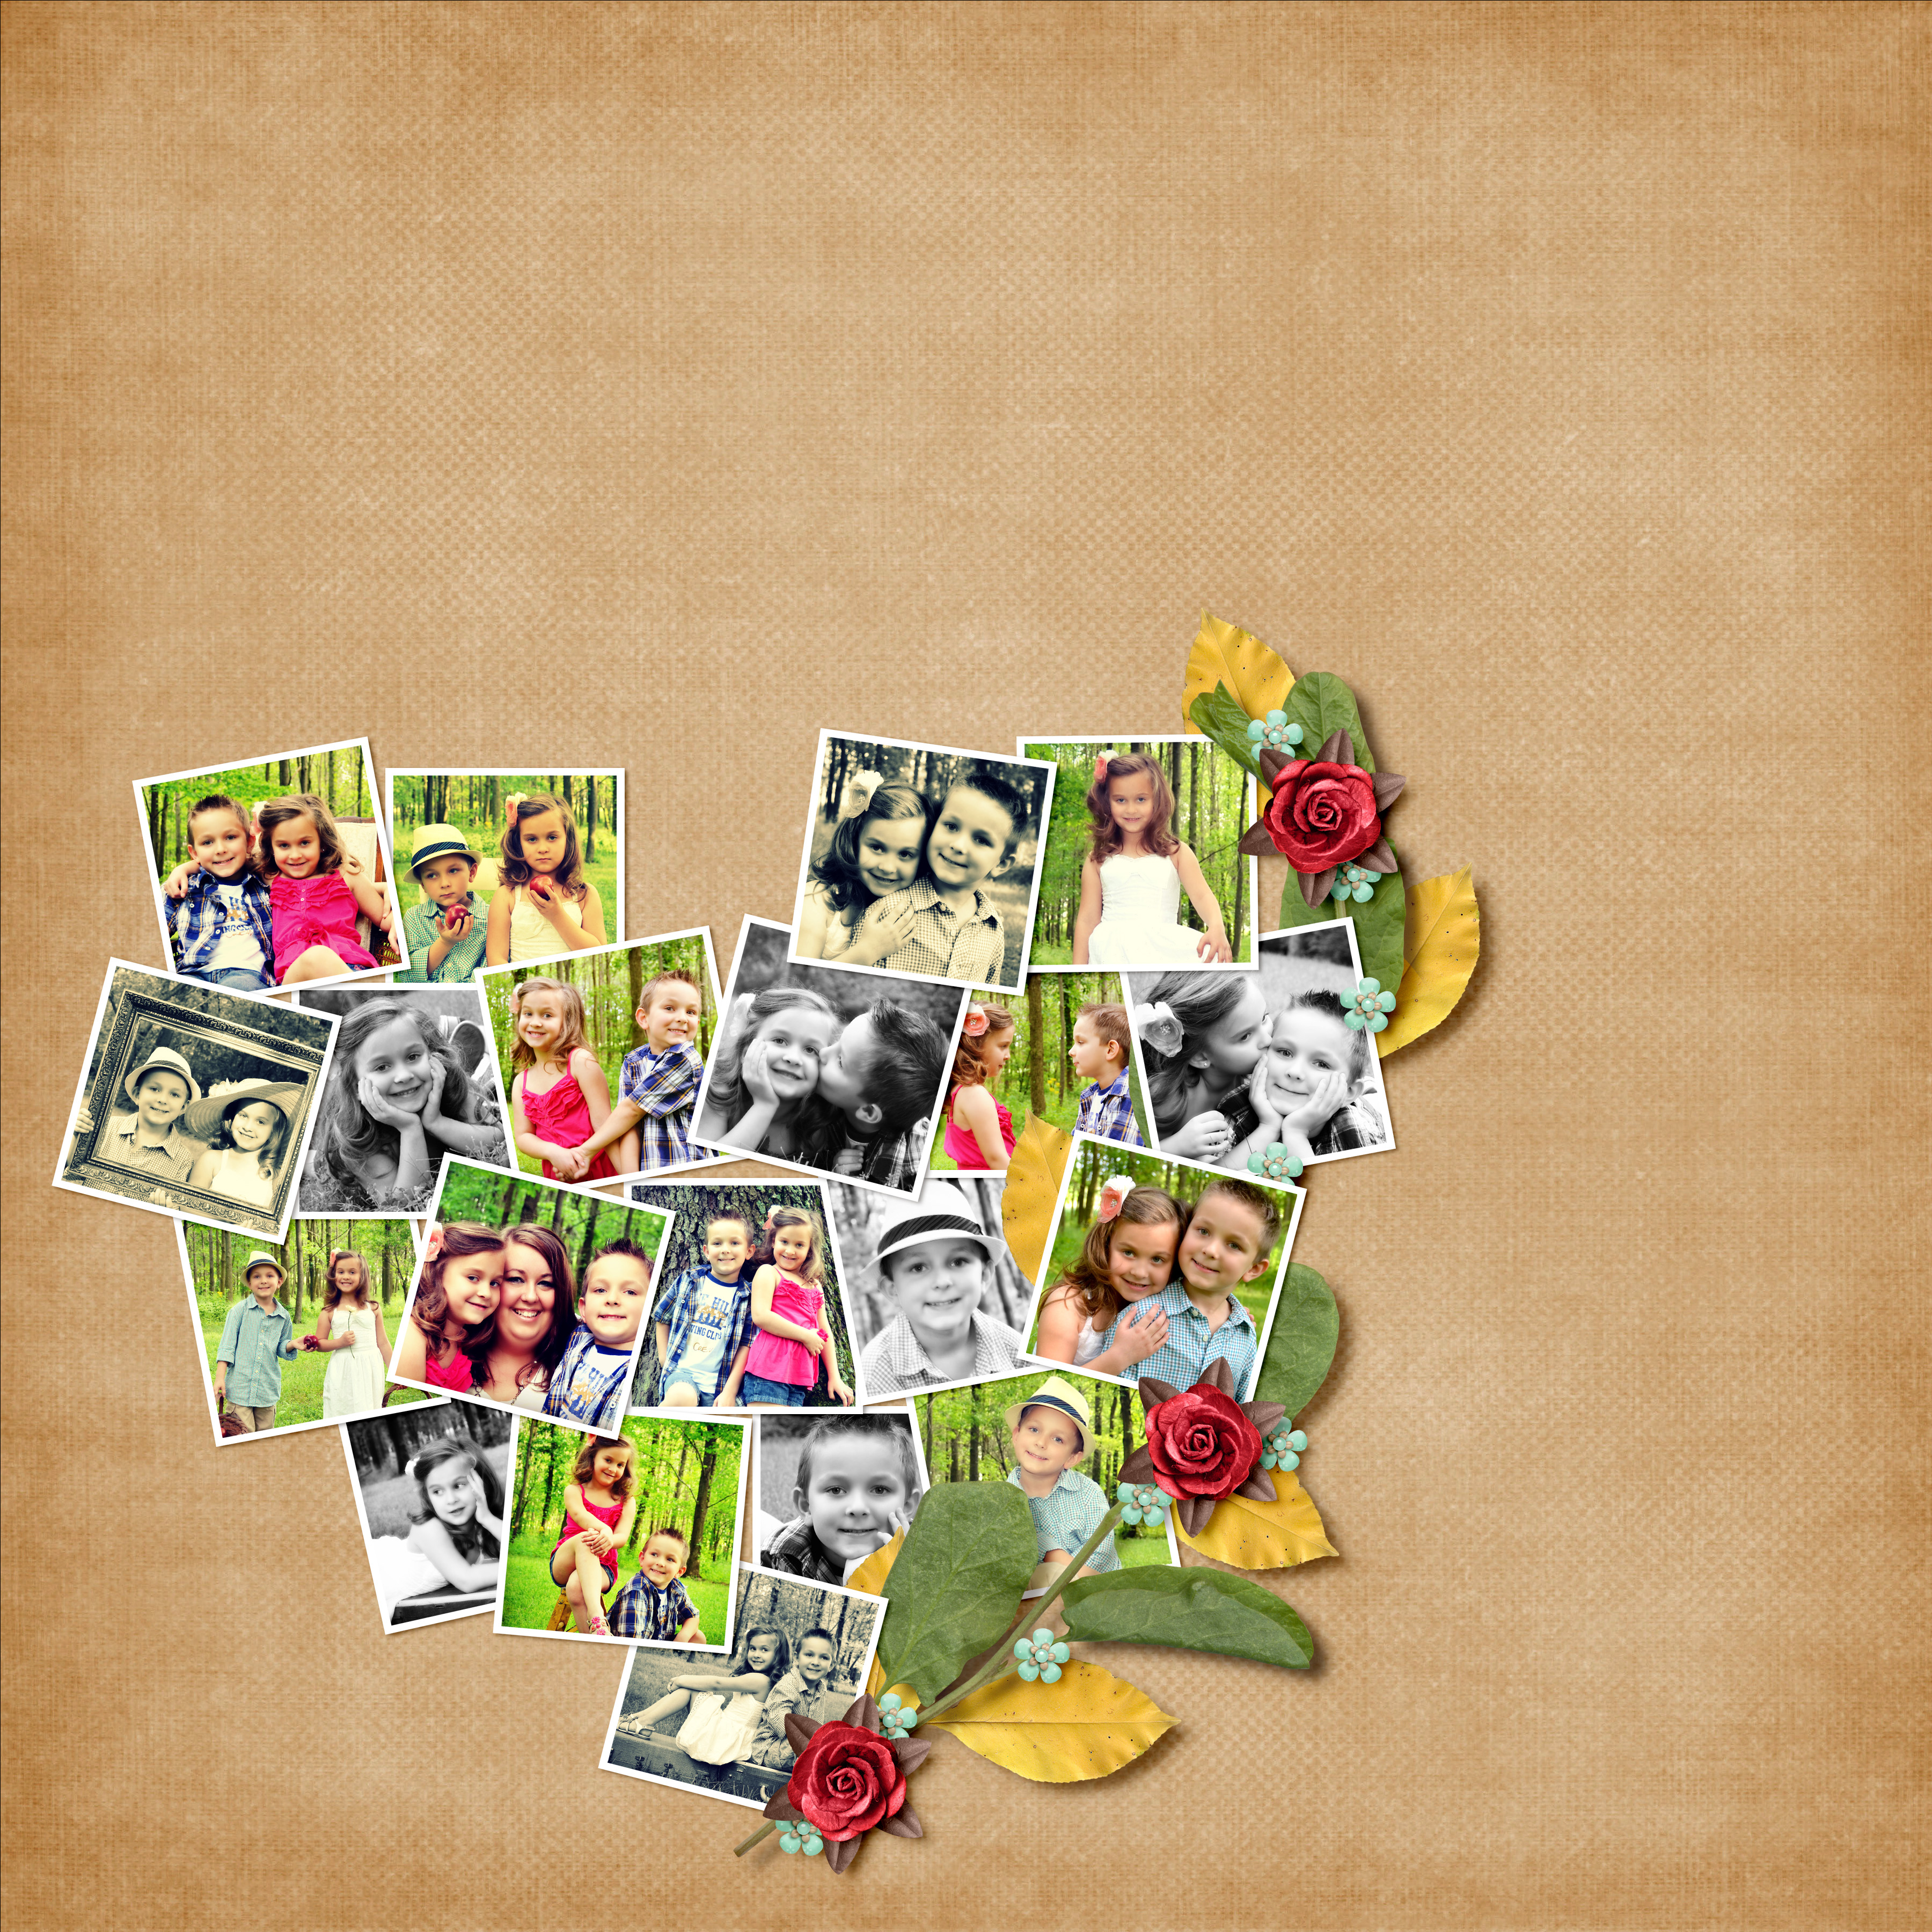 January 7 Collage-Large Number of Photos.jpg